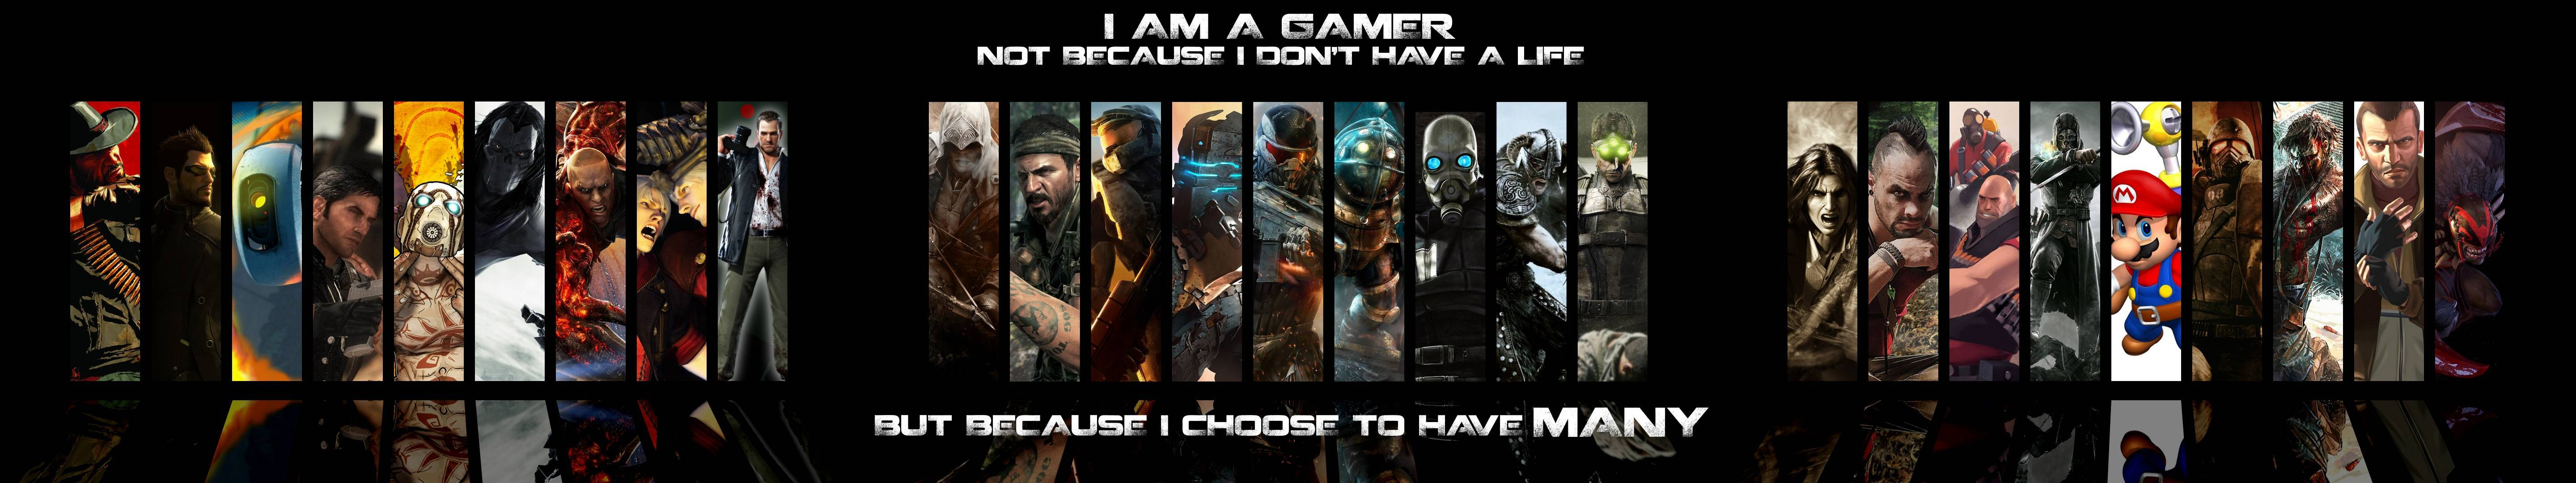 Video Game Collage 5760x1080